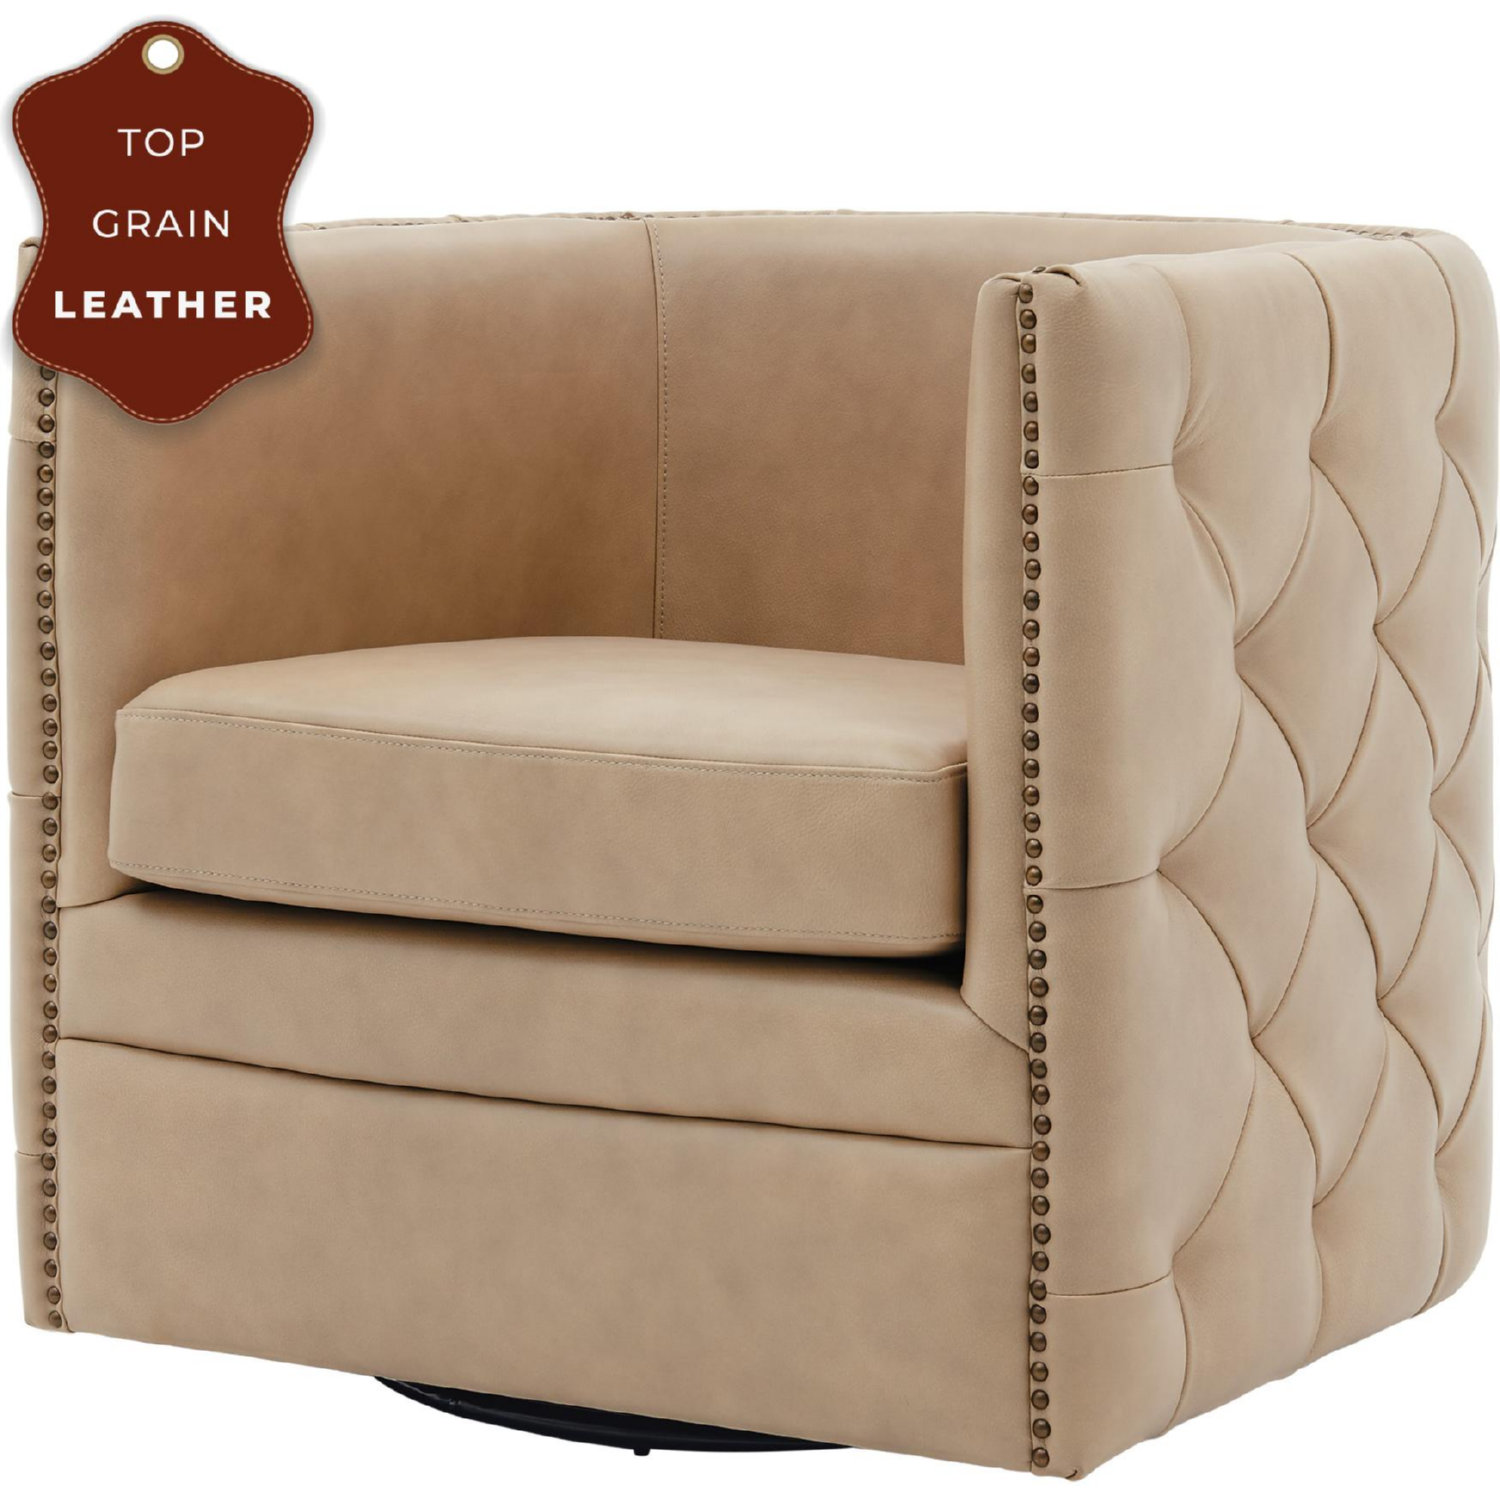 Picture of: Npd 1900152 427 Leslie Swivel Accent Chair In Tufted Beige Top Grain Leather